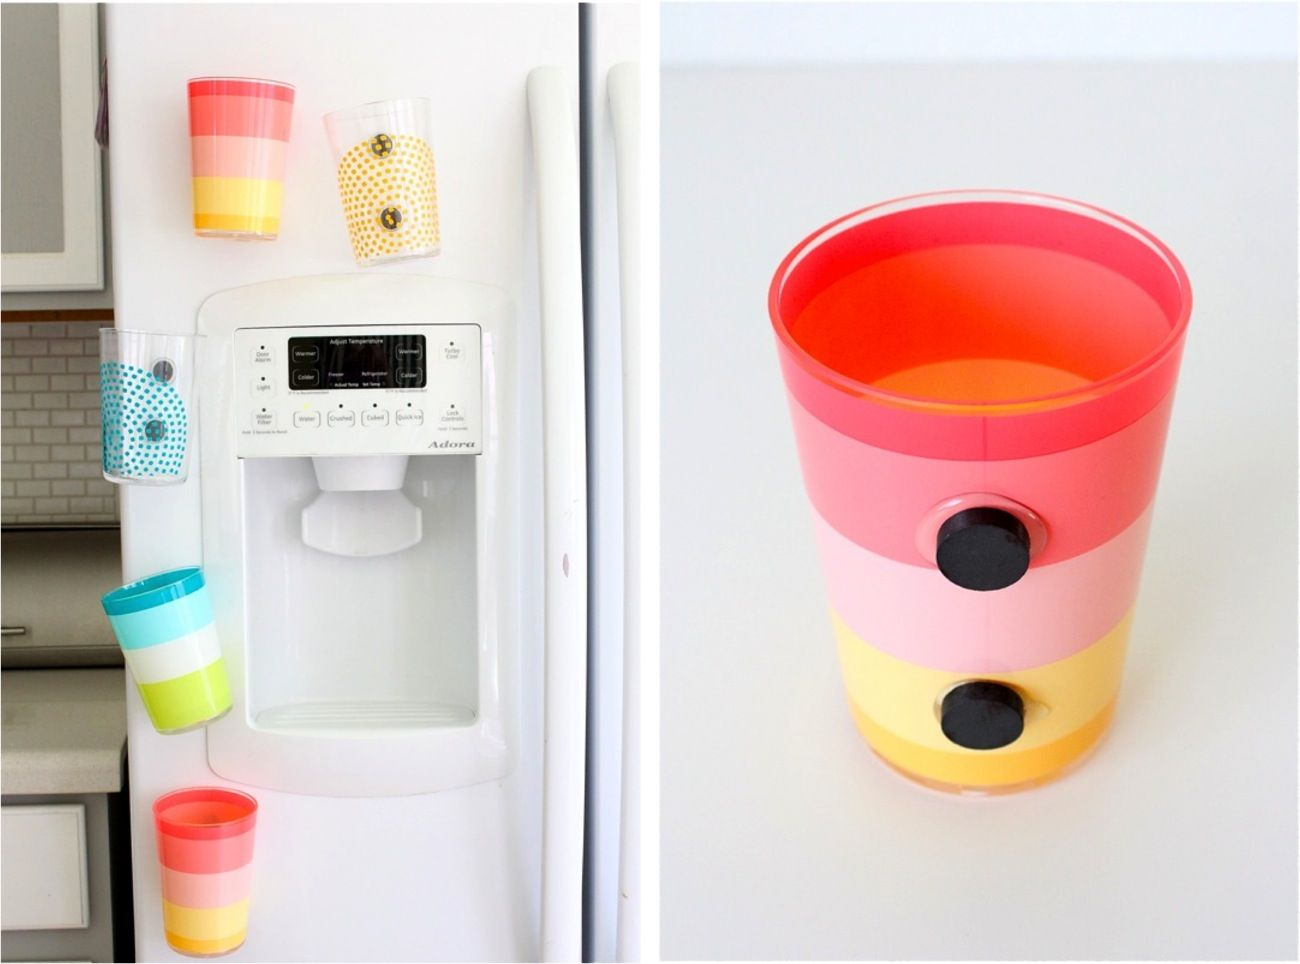 Tired of kids asking for a drink of water every two seconds and pulling new cups out of the cupboard. Why not make cups that stick on the fridge with magnets?  They can grab a cup, get their own water, then stick it back in the same spot.